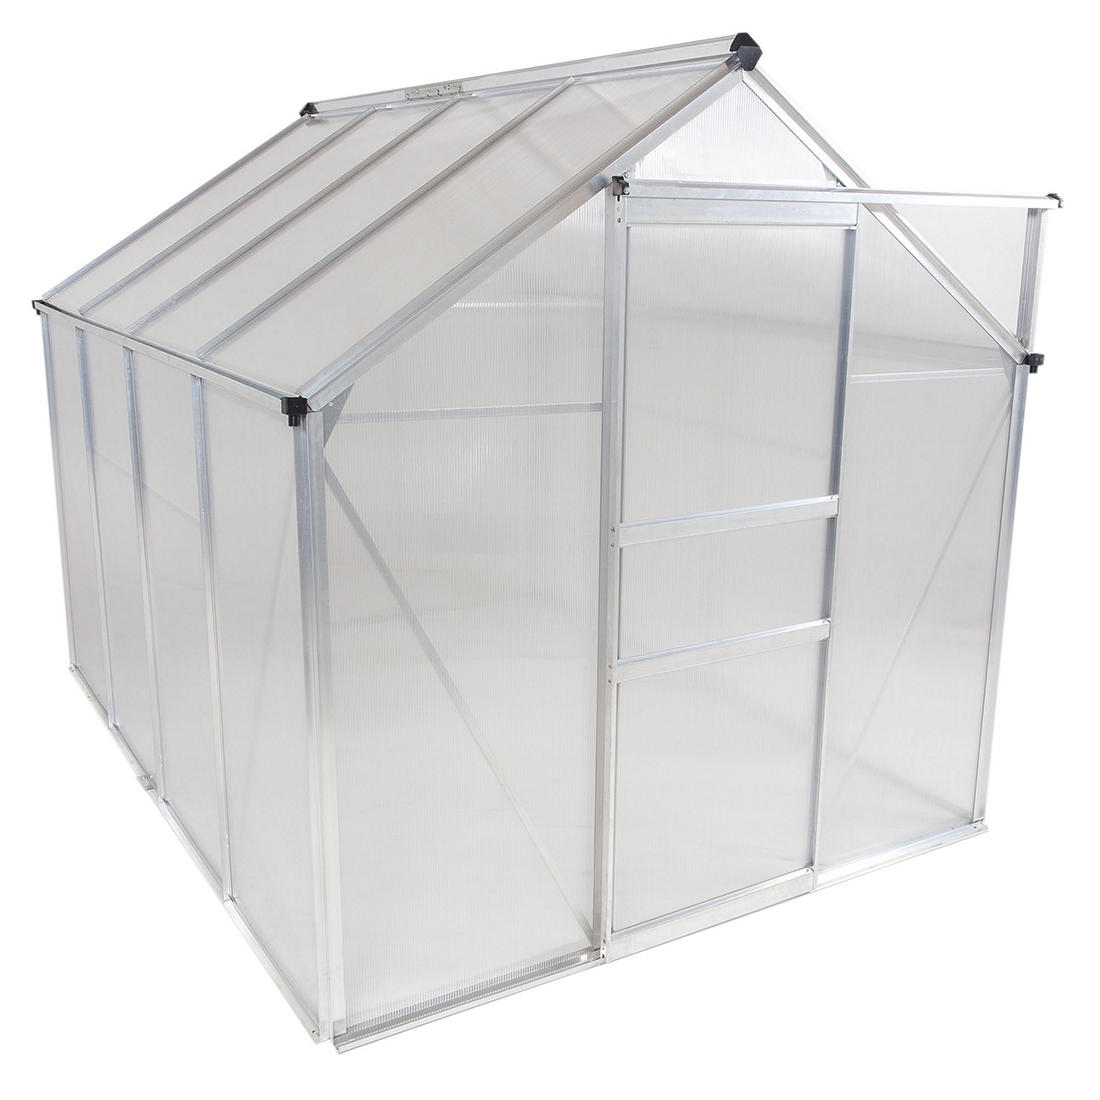 Osgrow 6 X 8 Walk In Greenhouse With Sliding Door Adjustable Roof Vent And Heavy Duty Aluminum Frame Bjs Wholesale Club